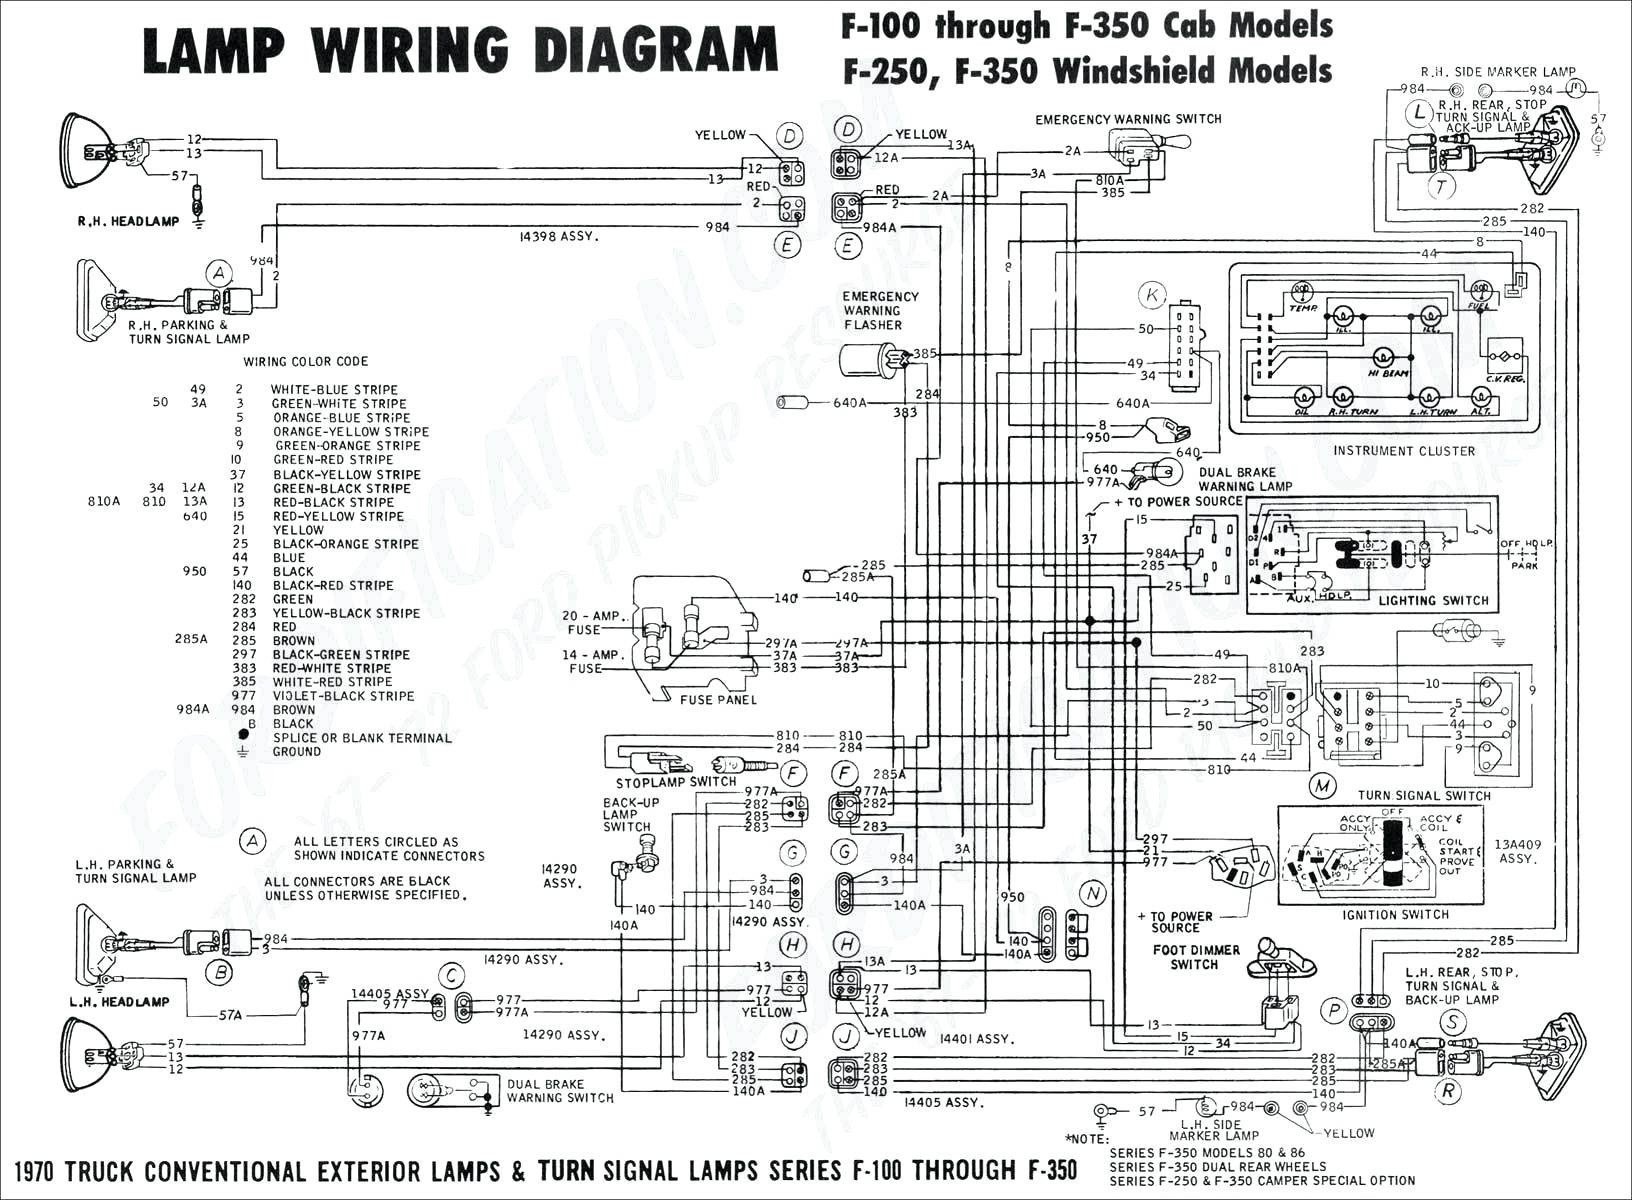 2018 F650 Wiring Diagram 2001 F350 Wiring Diagram Wiring Diagram Data Of 2018 F650 Wiring Diagram